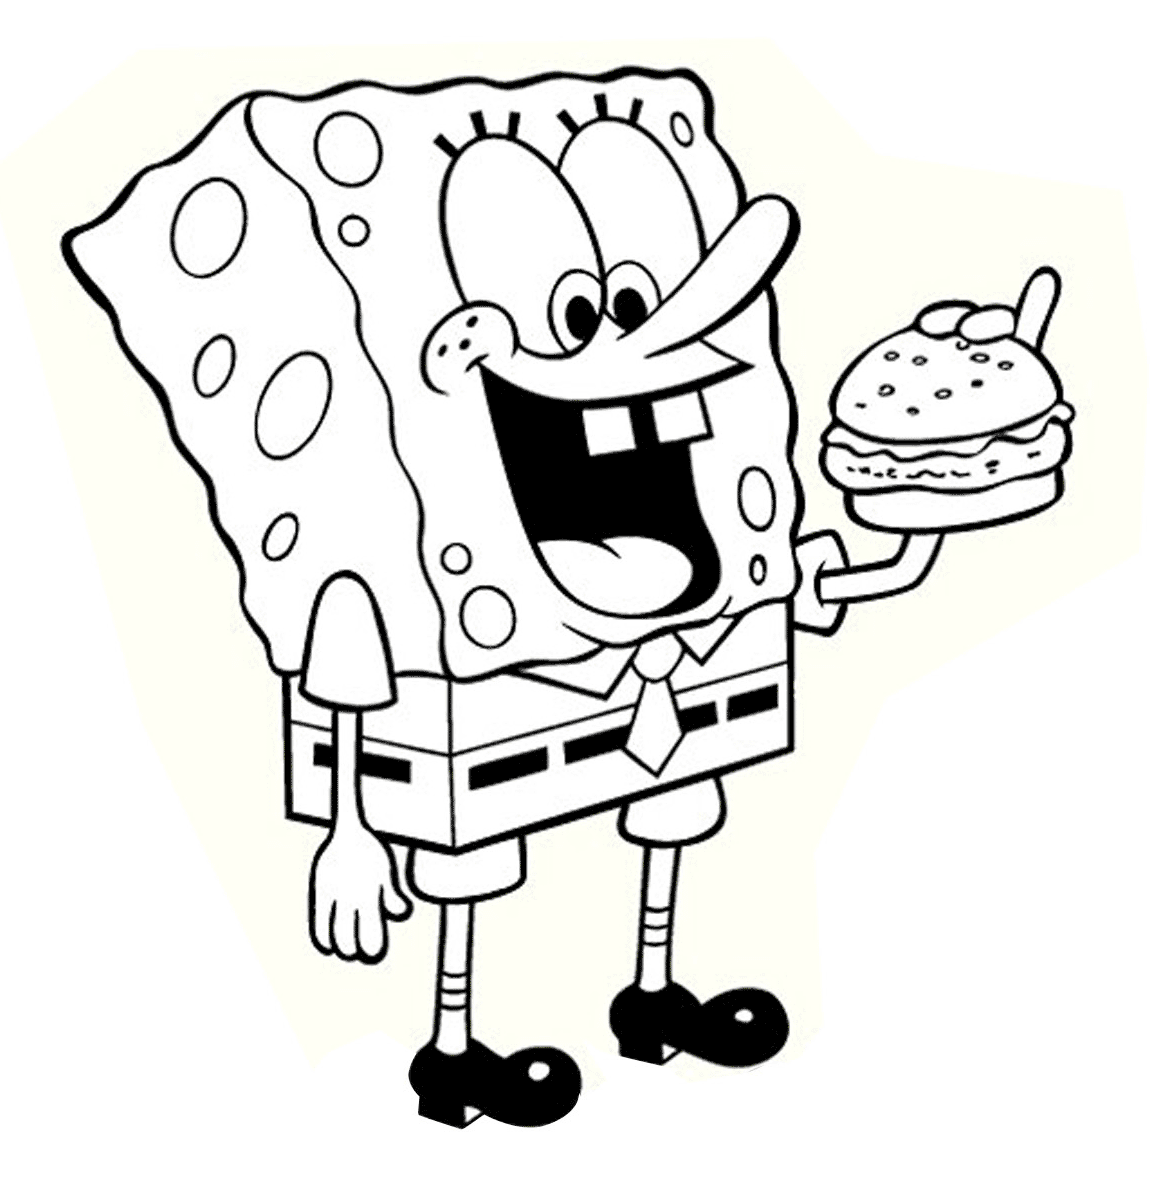 Printable Spongebob Coloring Pages Are Pretty Cool